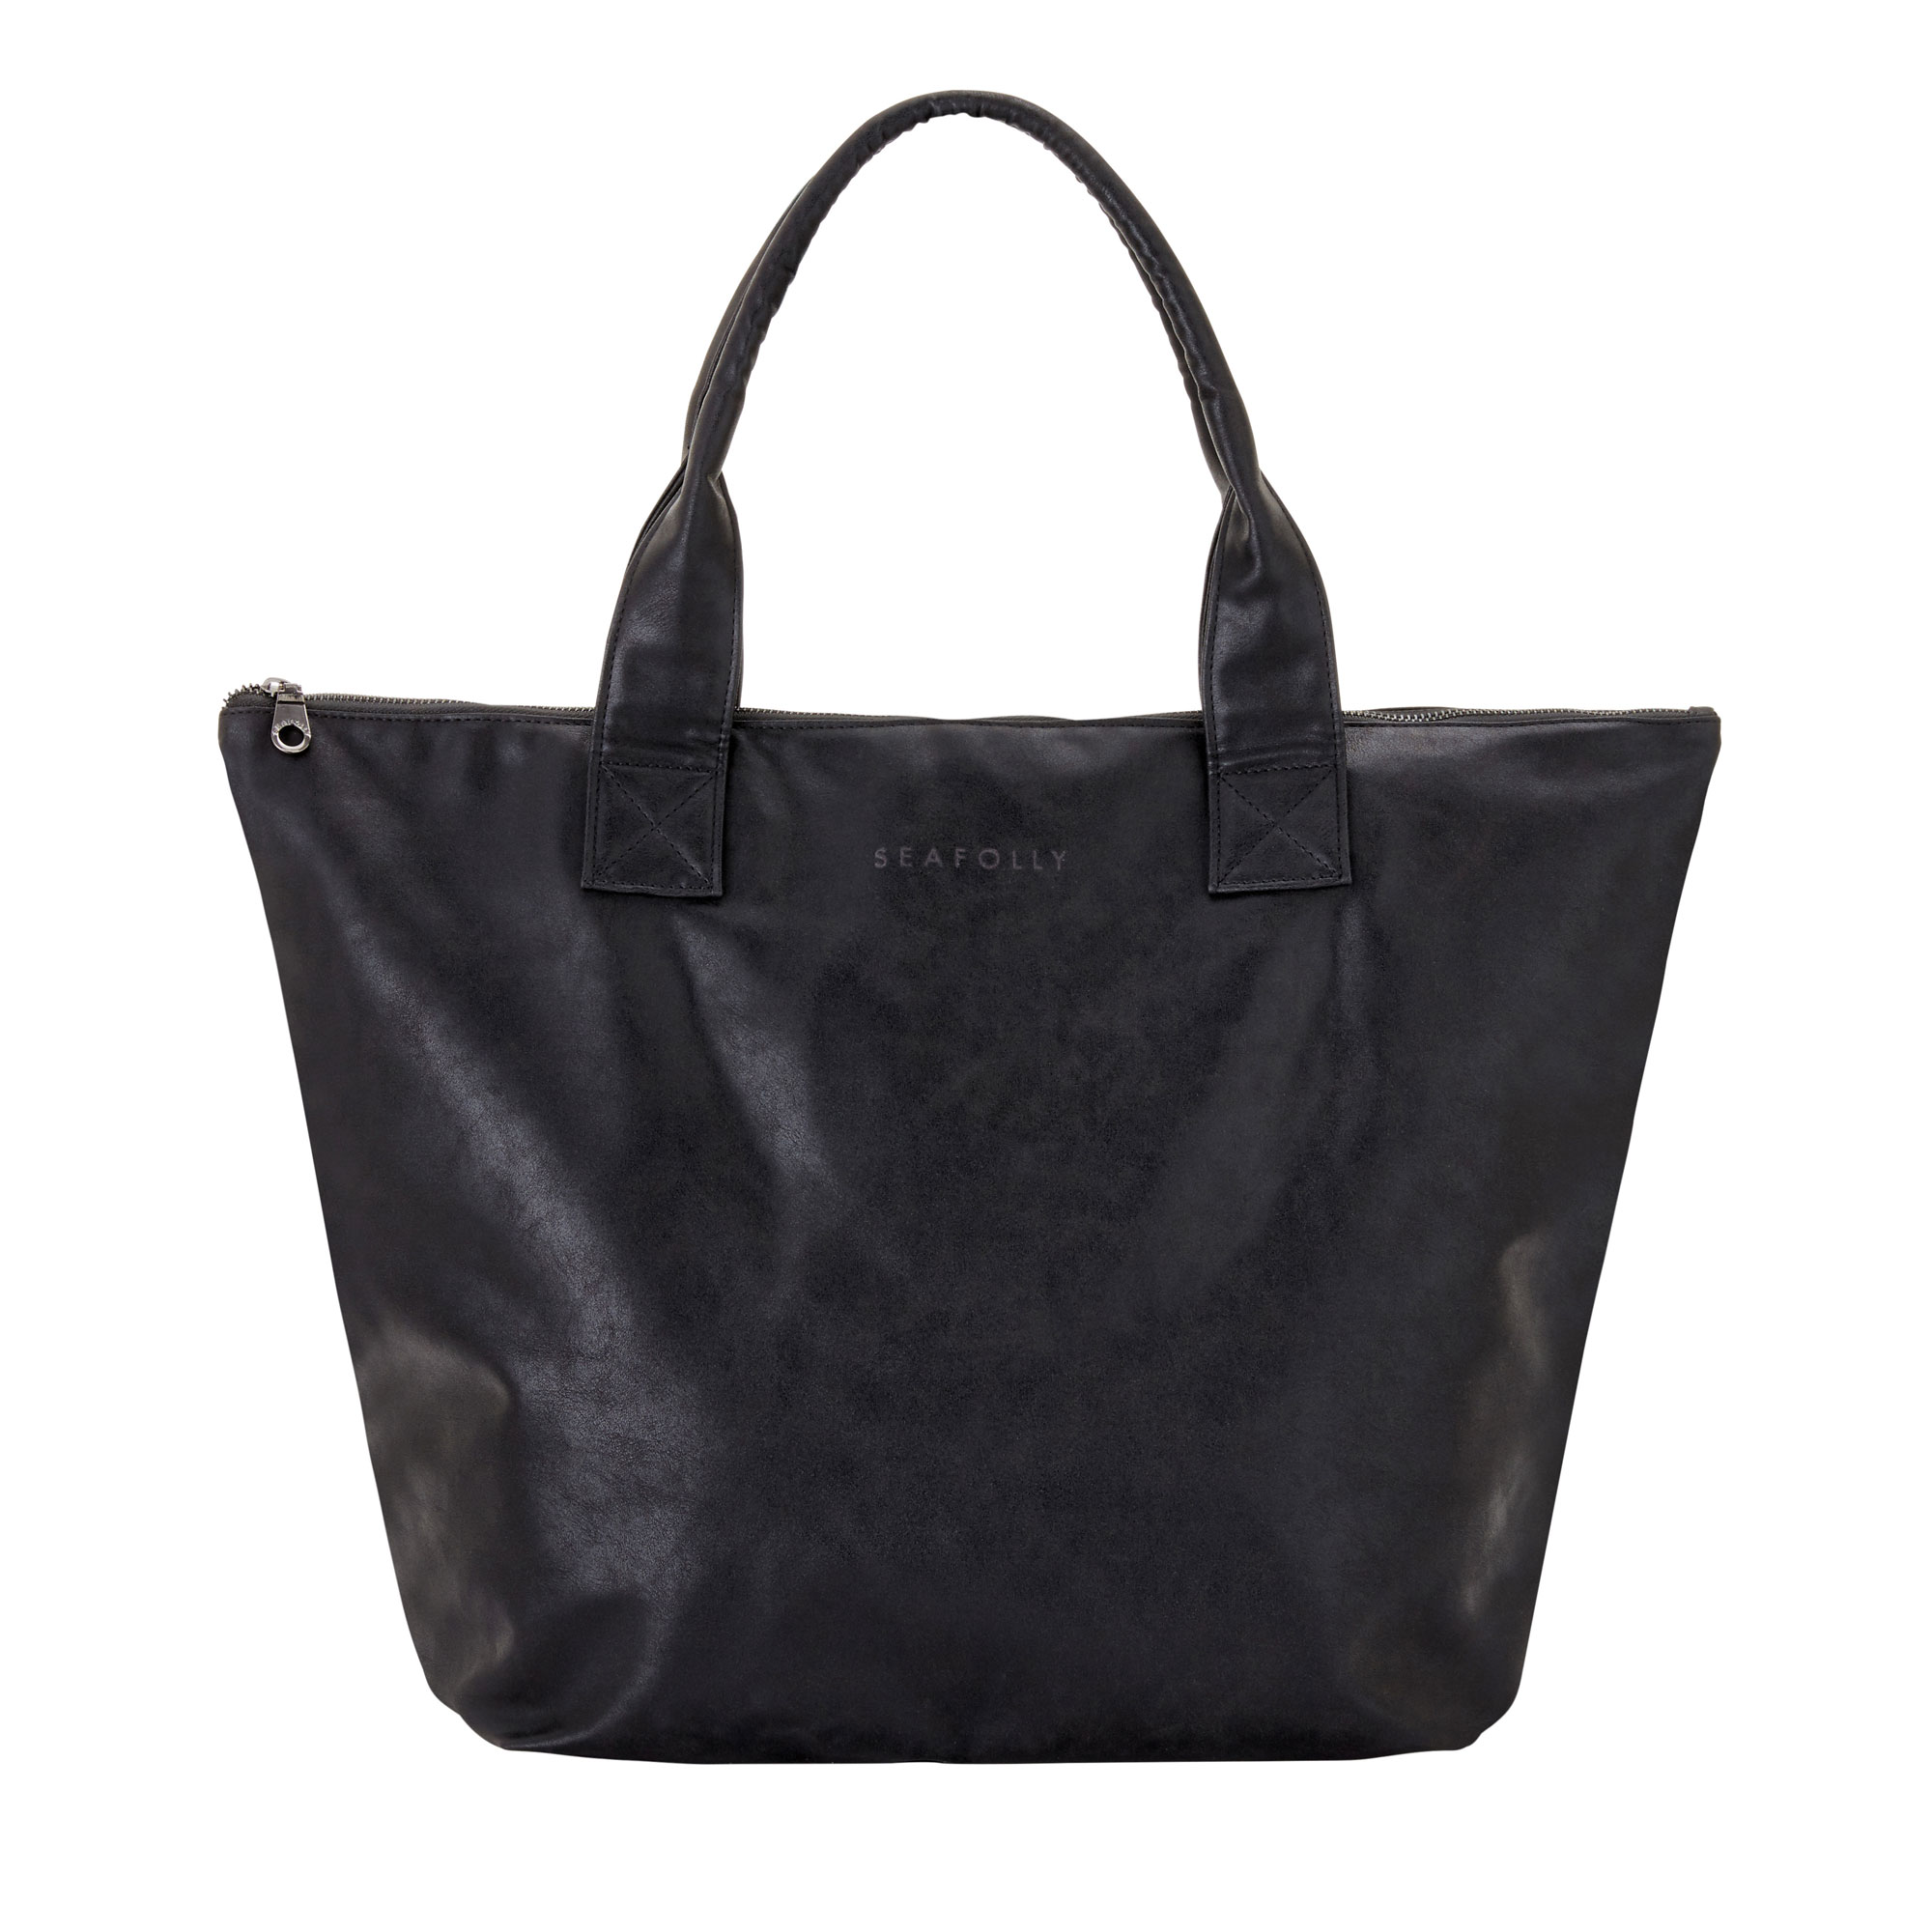 Seafolly Tragetasche Vegan Leather Shopper Tote...